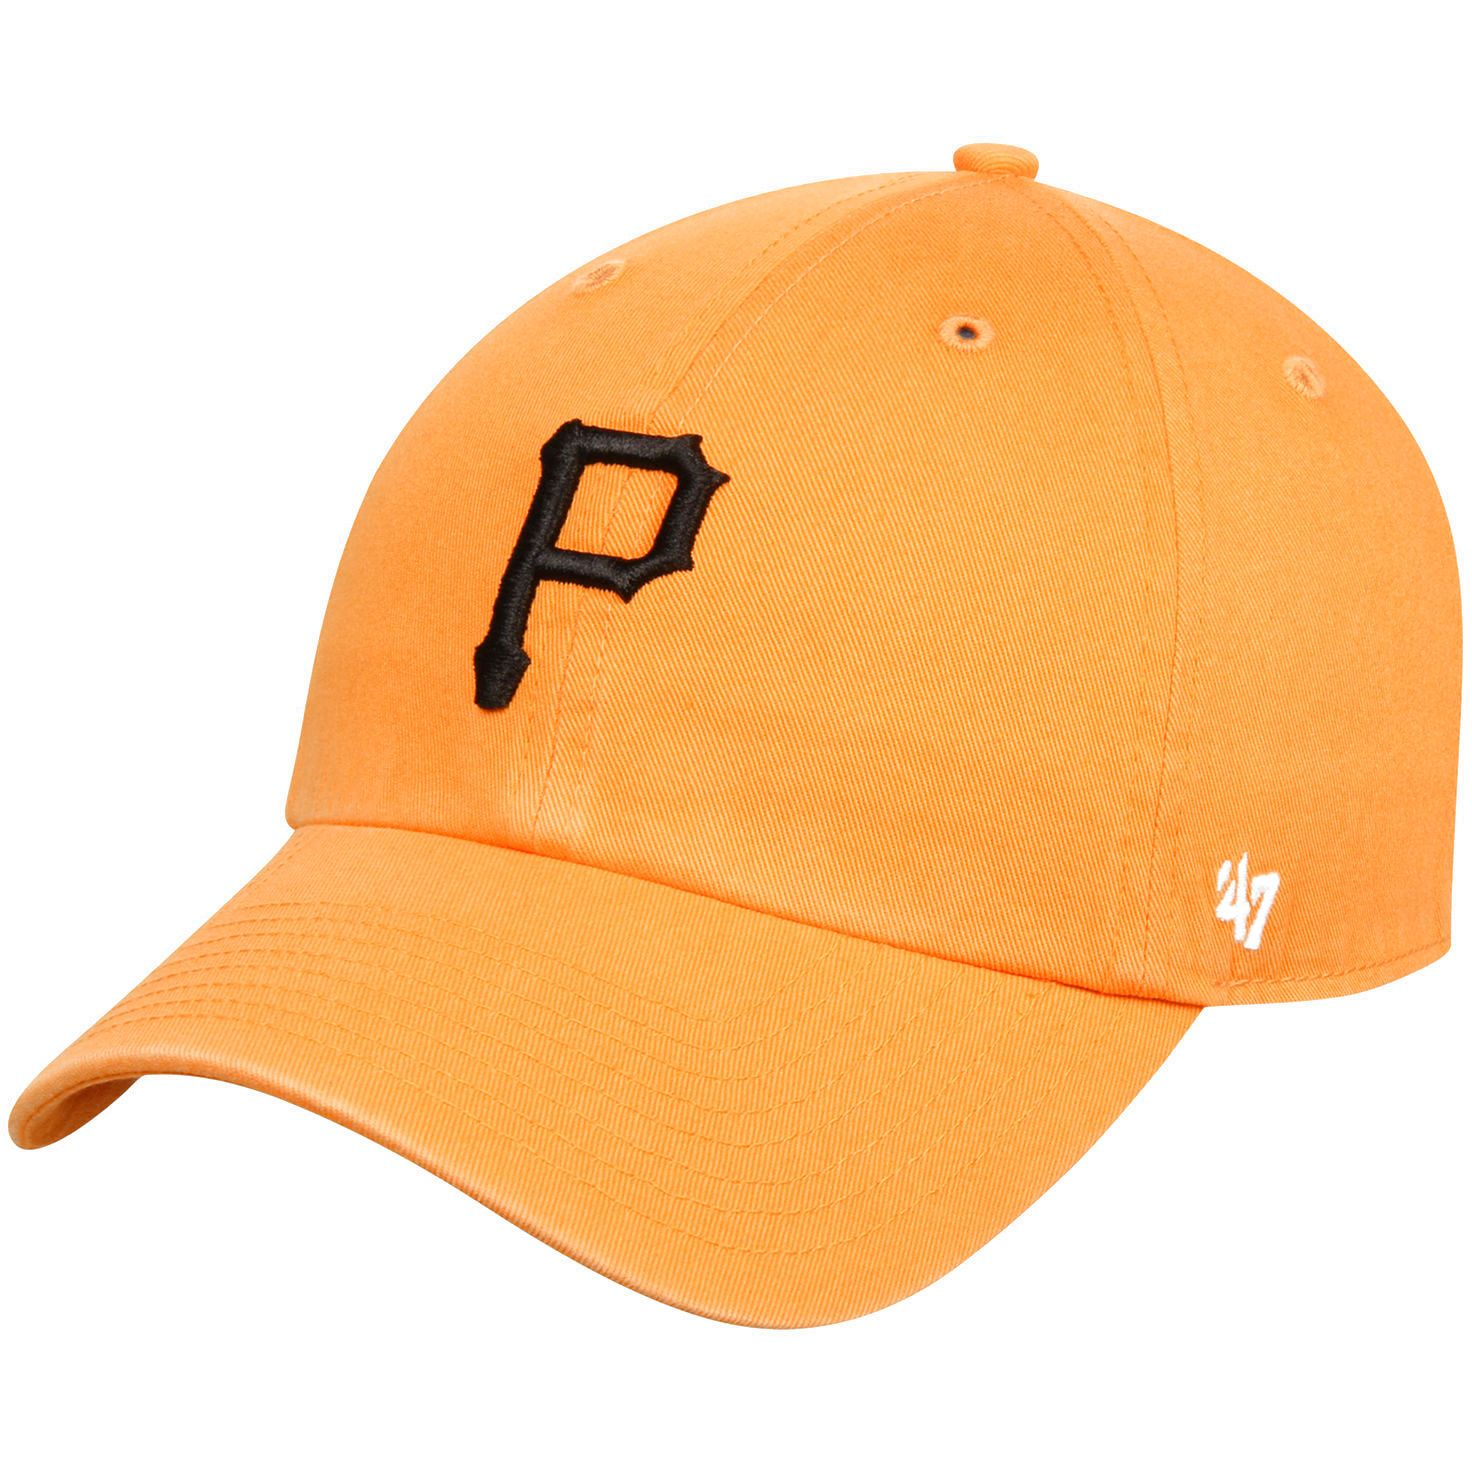 Pittsburgh Pirates '47 BL Clean Up Adjustable Hat - Gold - $17.59